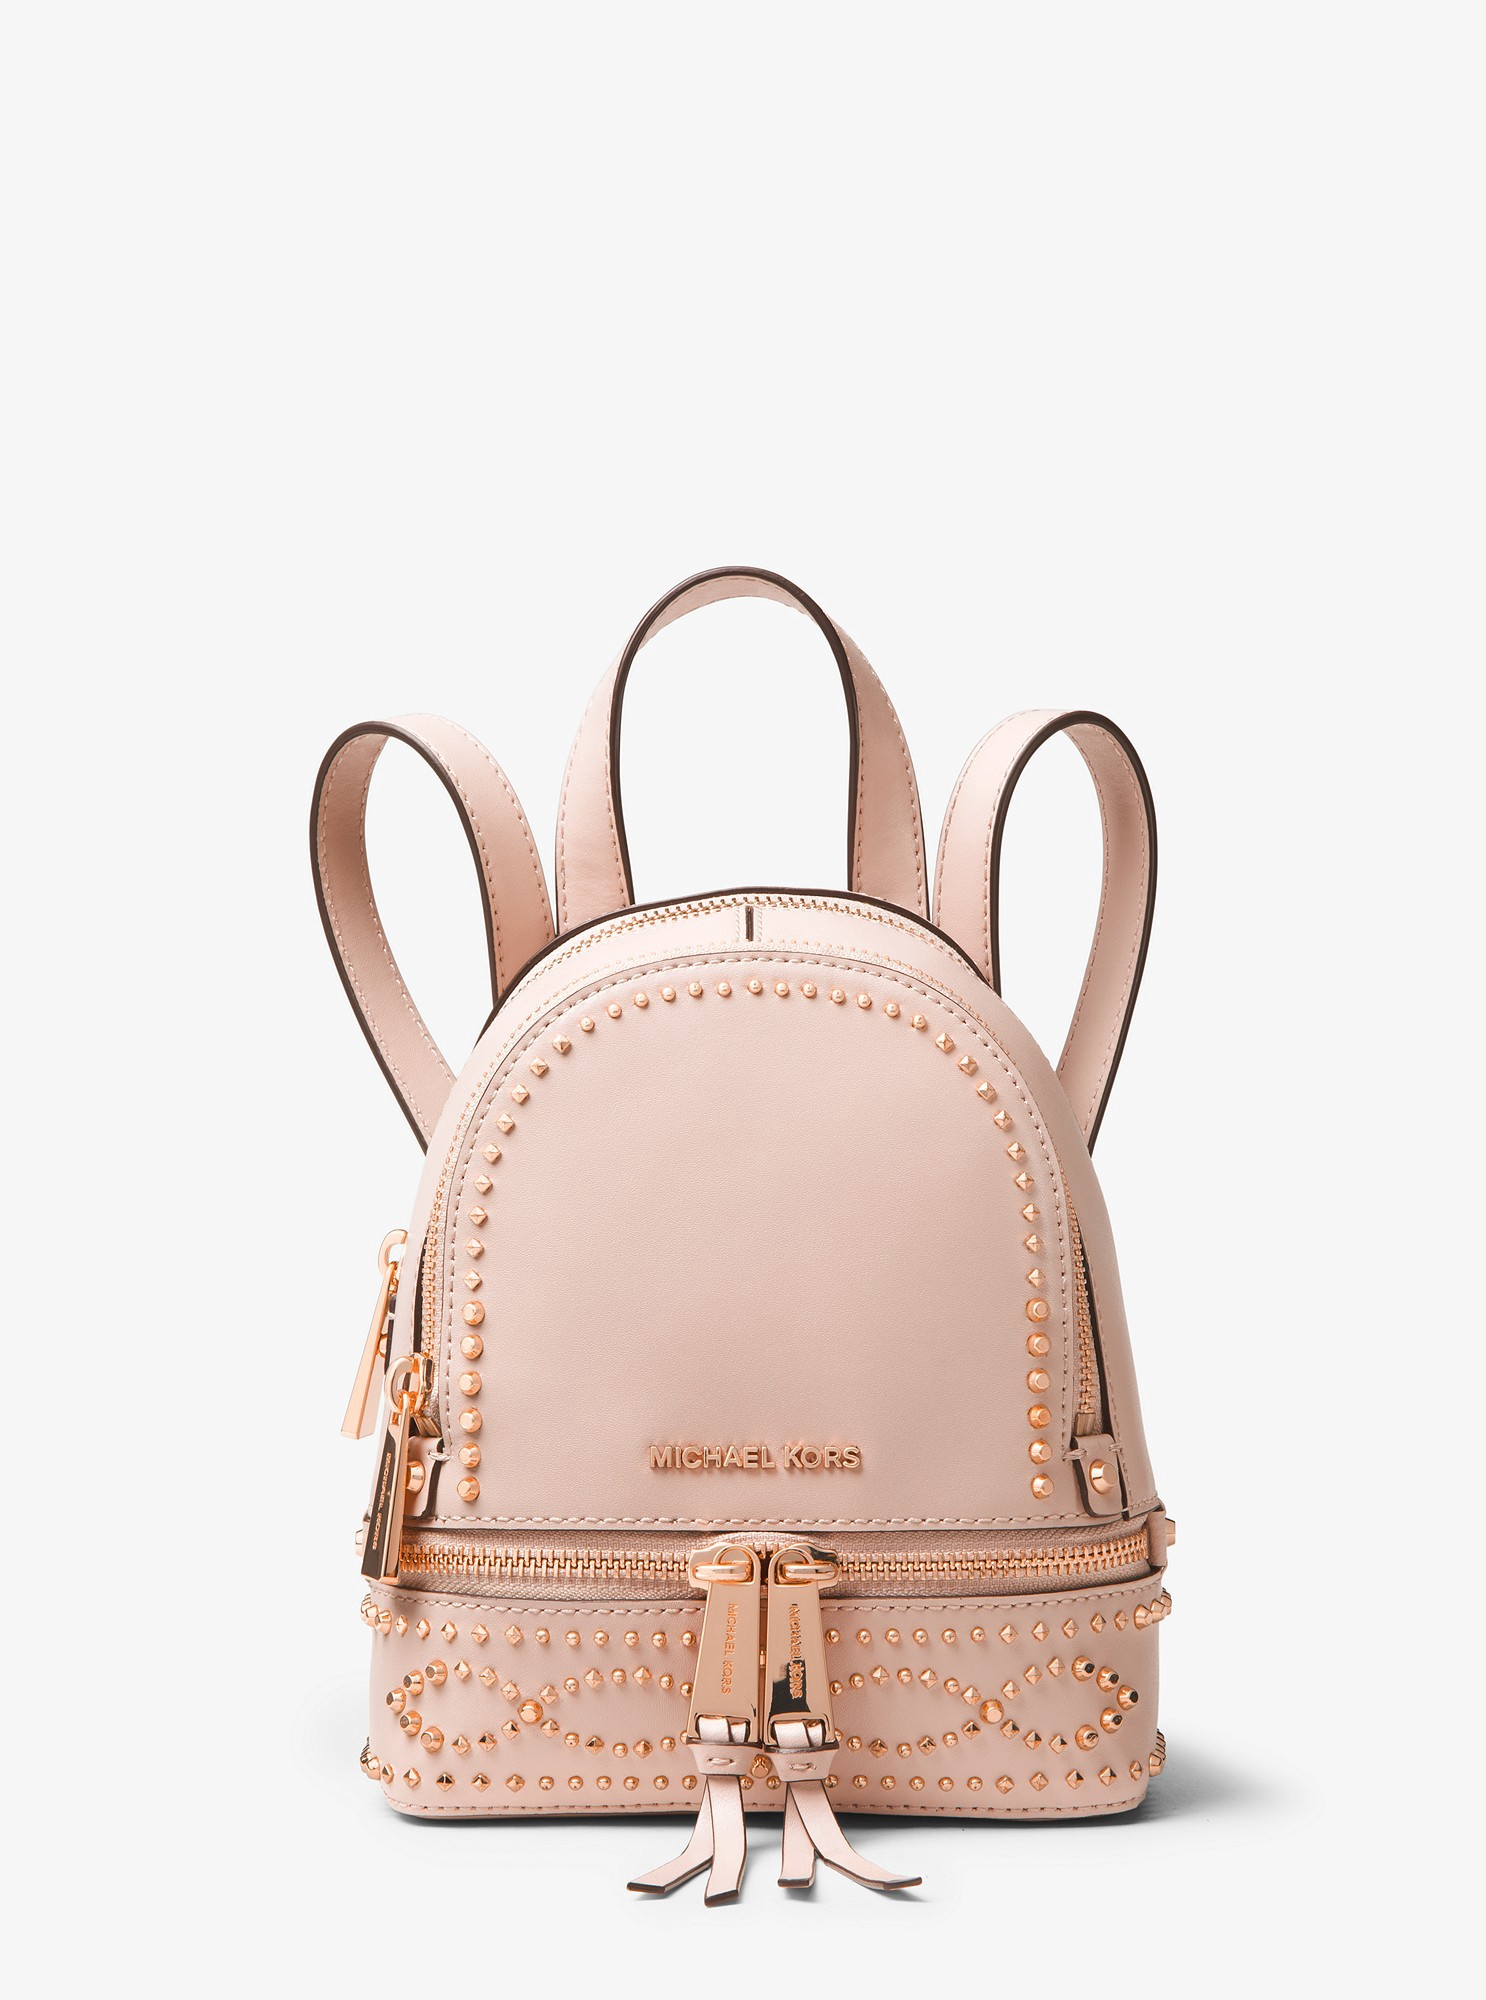 e287fb6ebbf7 Michael Kors Rhea Mini Studded Leather Backpack - Soft Pink ...